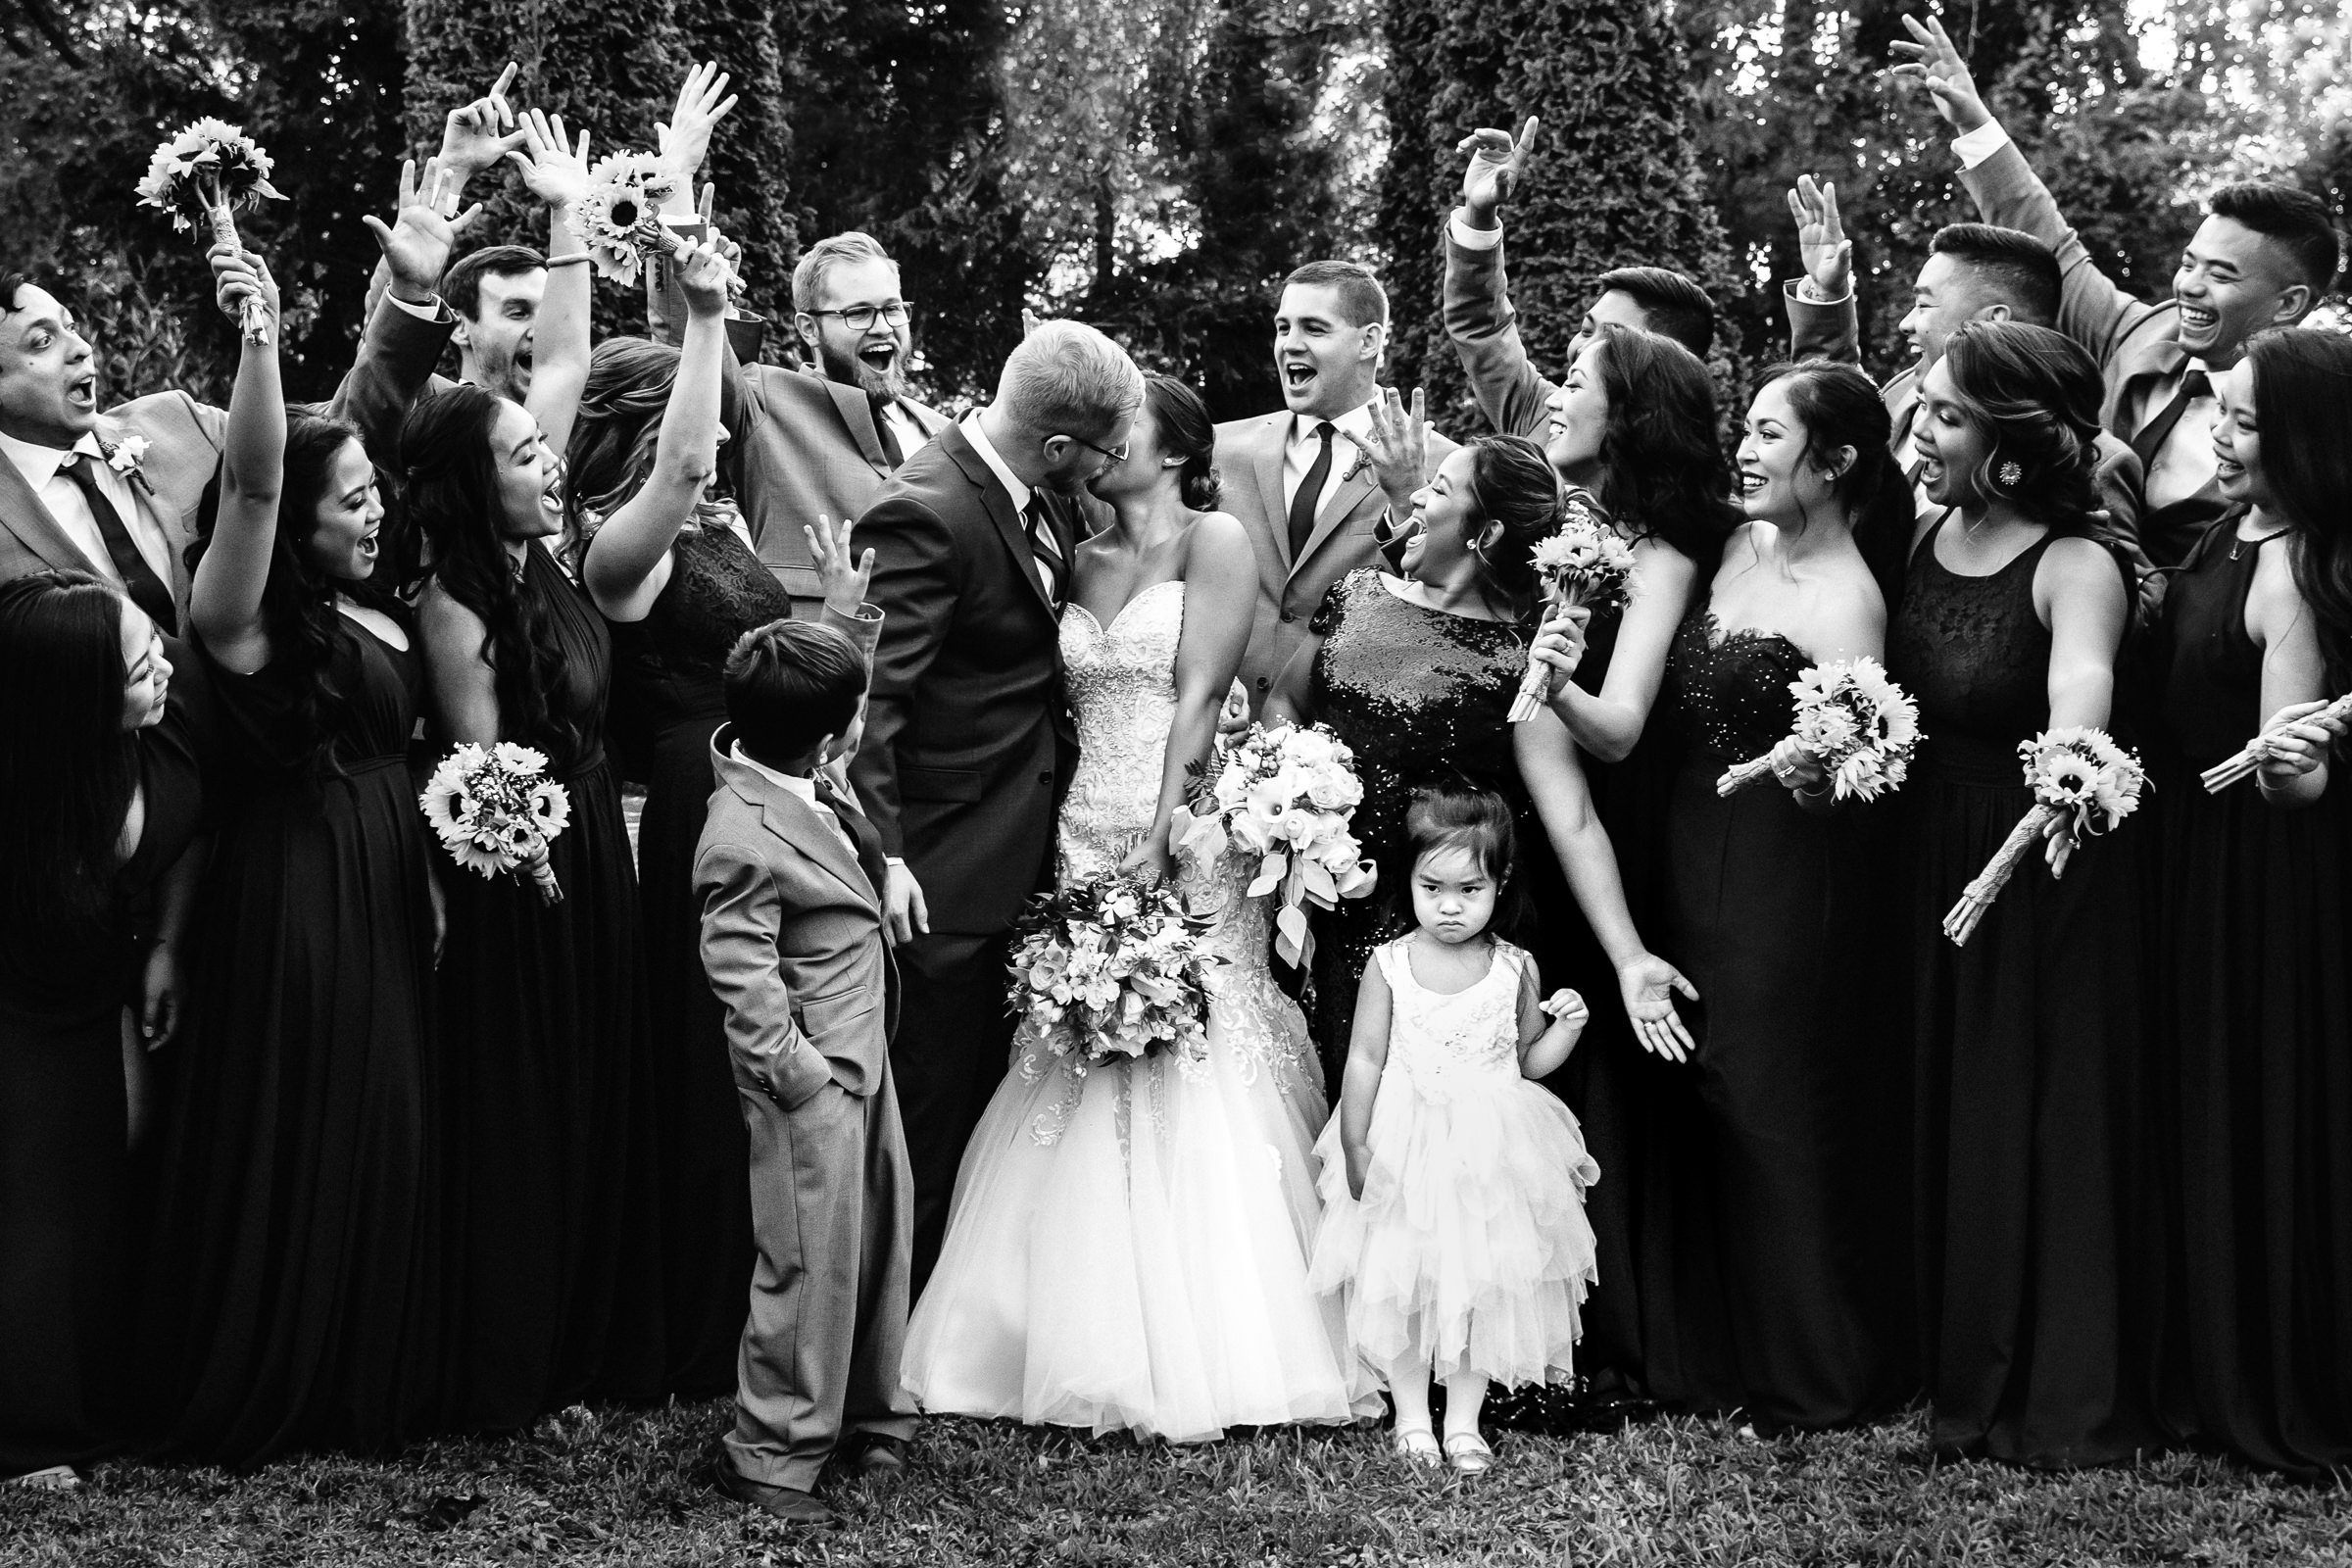 Hands in the air for couple kiss - photo by Xiaoqi Li Photography